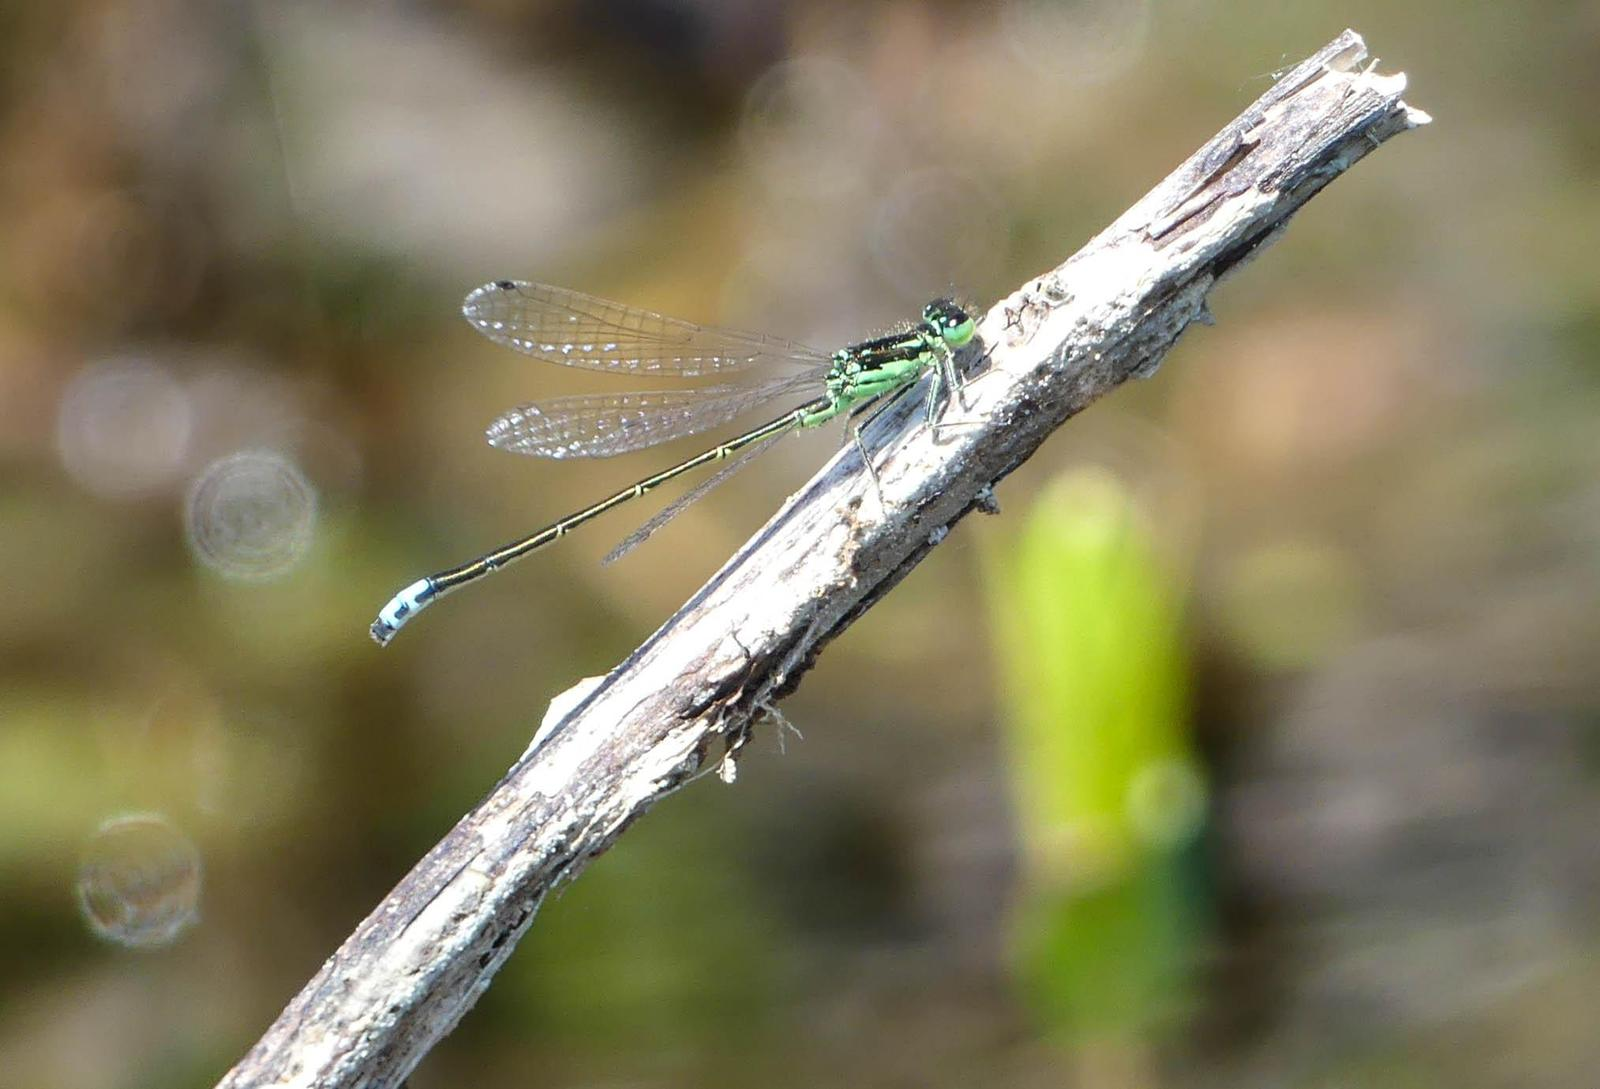 Eastern Forktail Photo by Gale VerHague